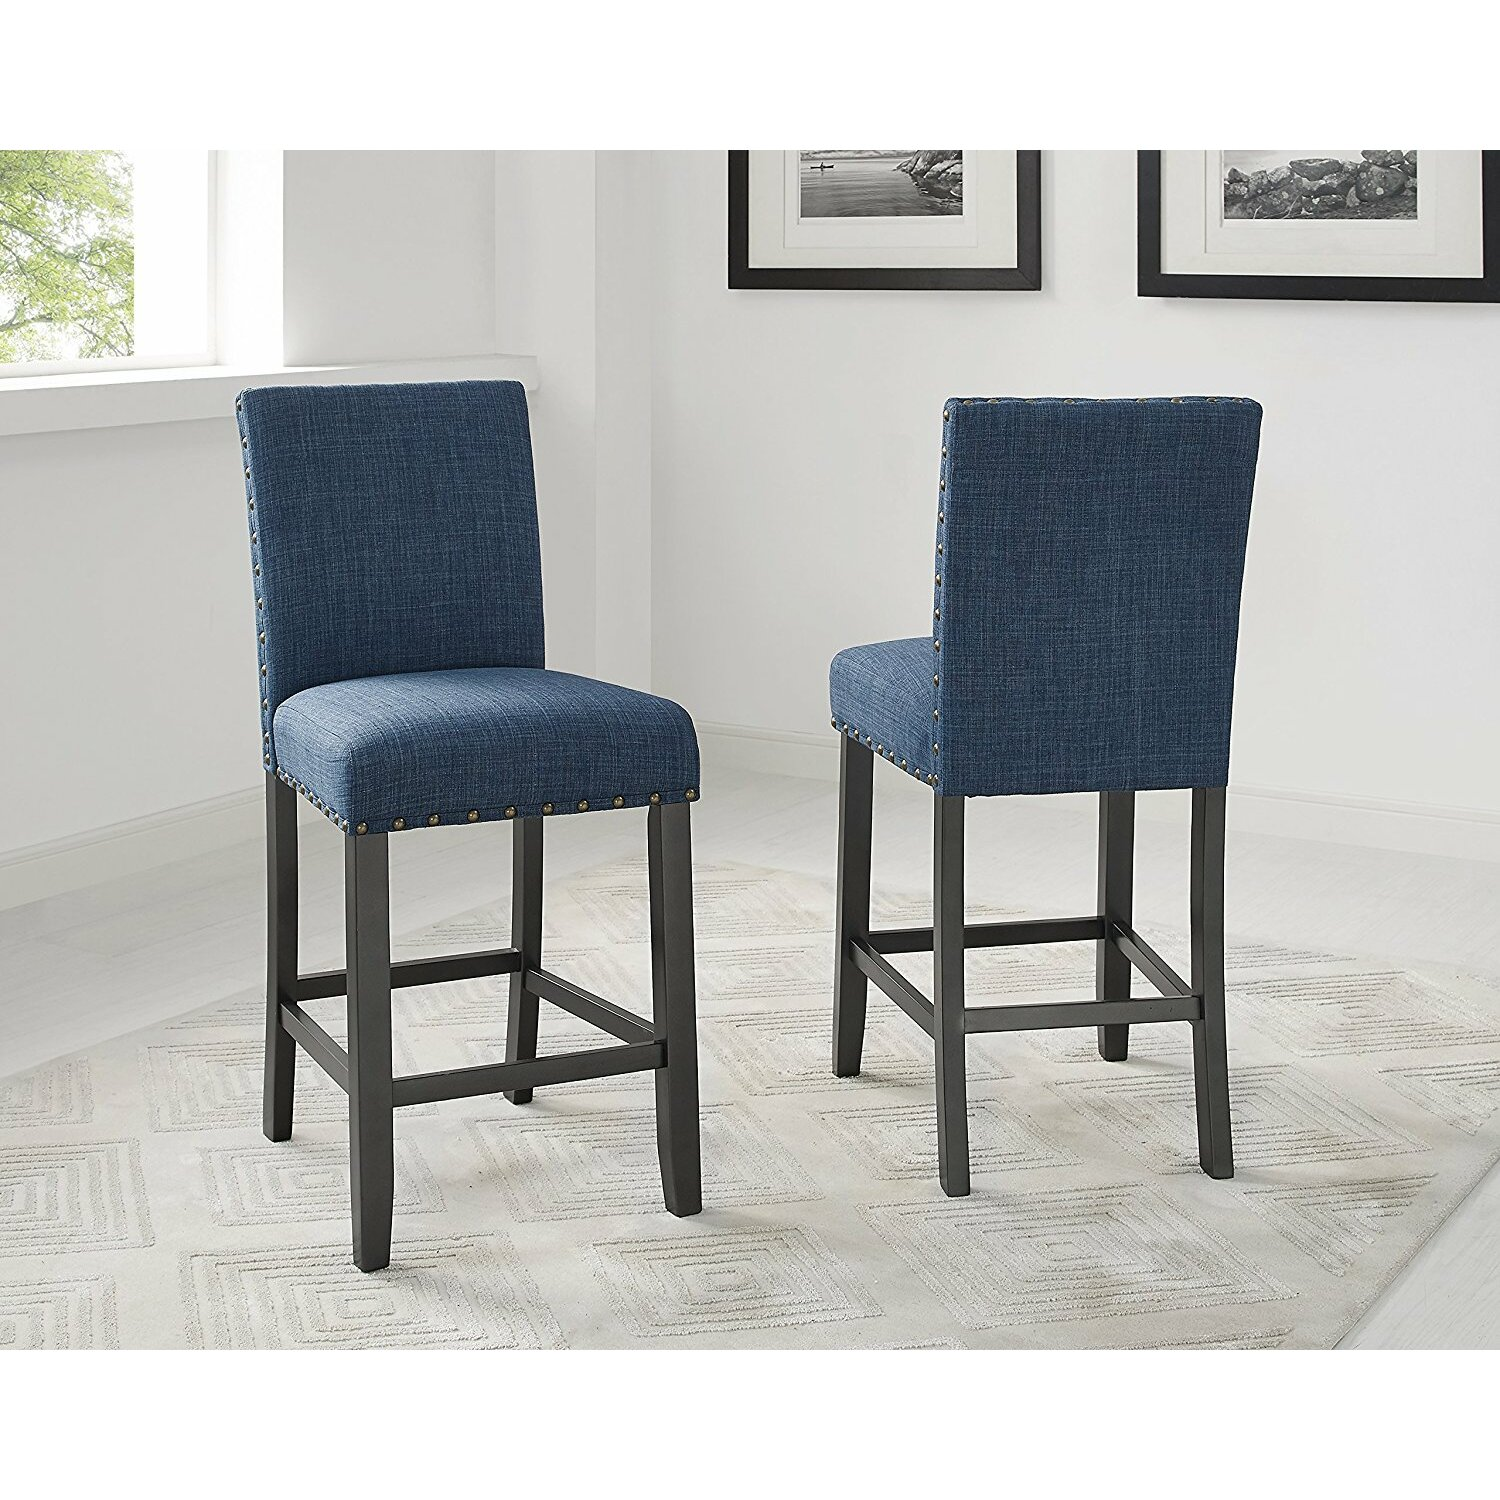 Set Of 4 Kitchen Counter Height Chairs With Microfiber: Brayden Studio Raquel Wood Counter Height 5 Piece Dining